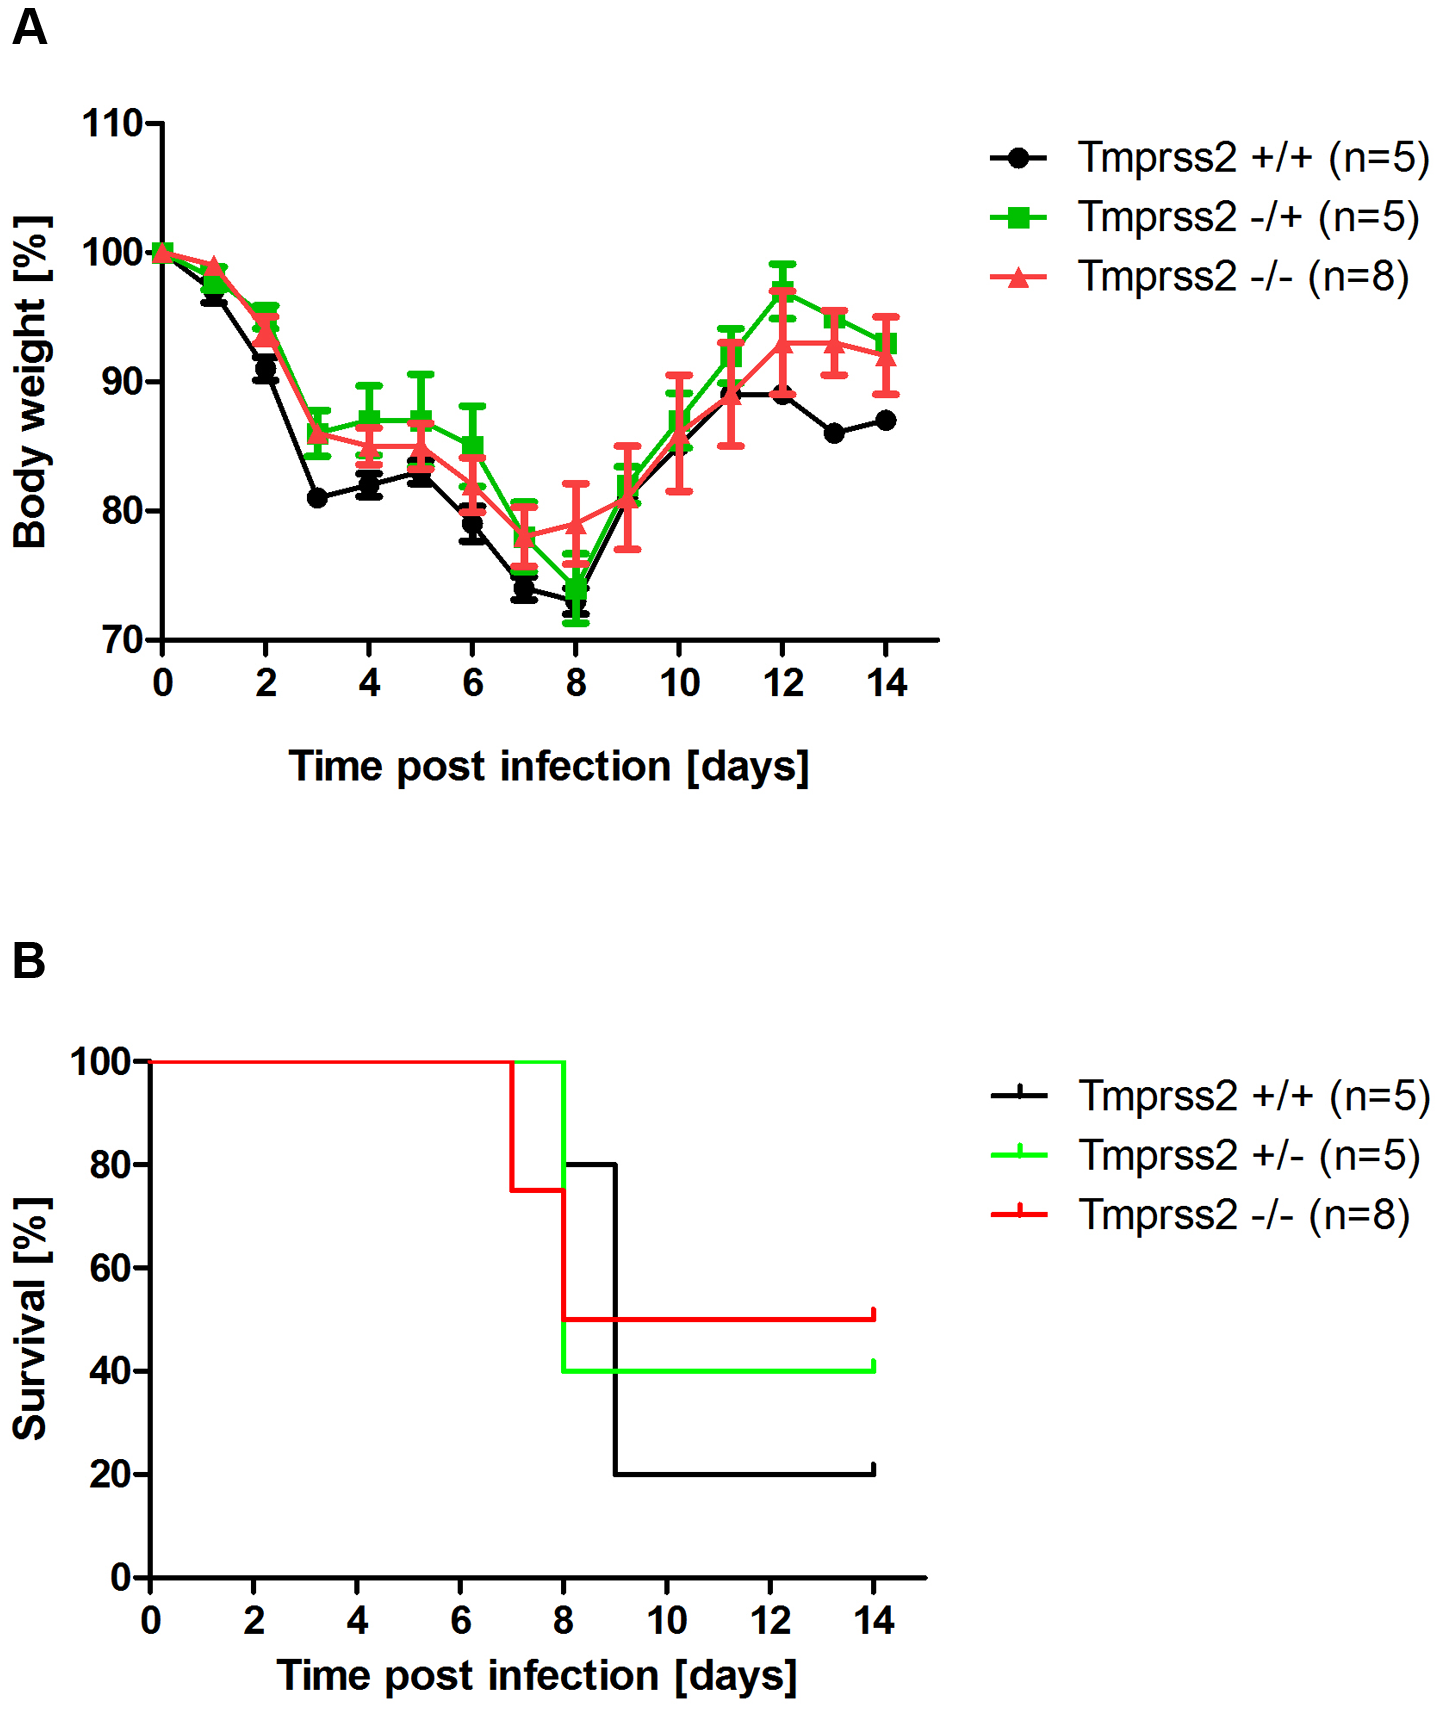 Murine Tmprss2 is not required for spread of H7N7 influenza A virus.